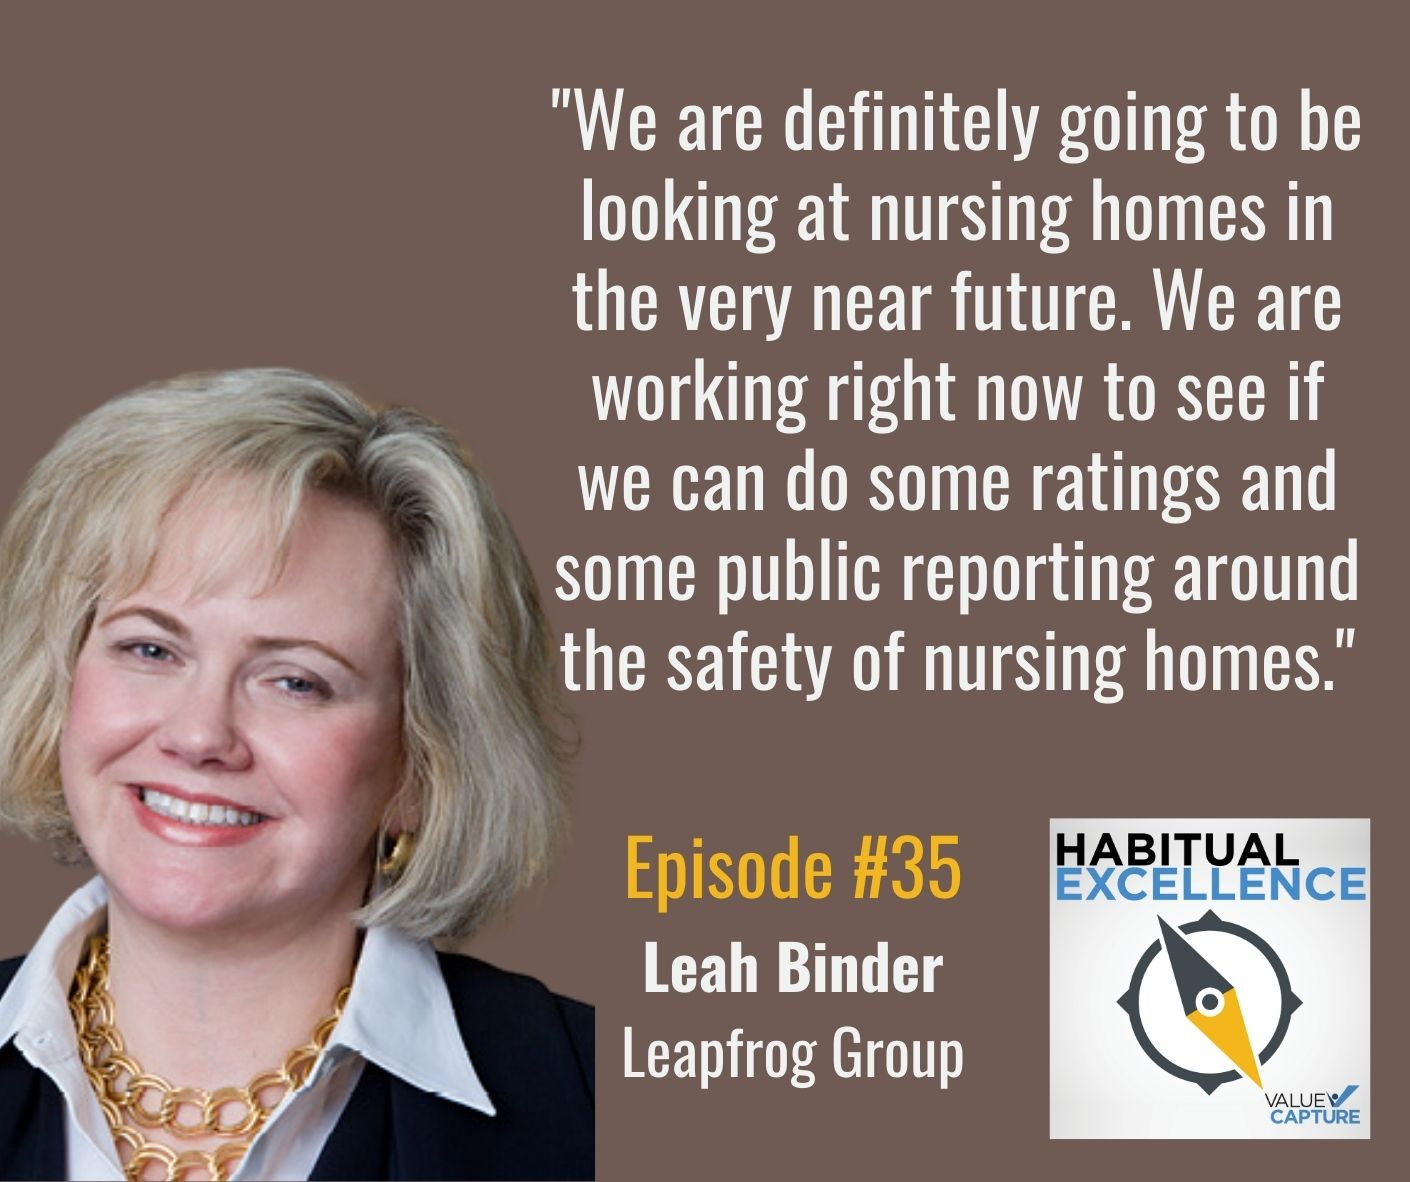 """""""We are definitely going to be looking at nursing homes in the very near future. We are working right now to see if we can do some ratings and some public reporting around the safety of nursing homes."""""""